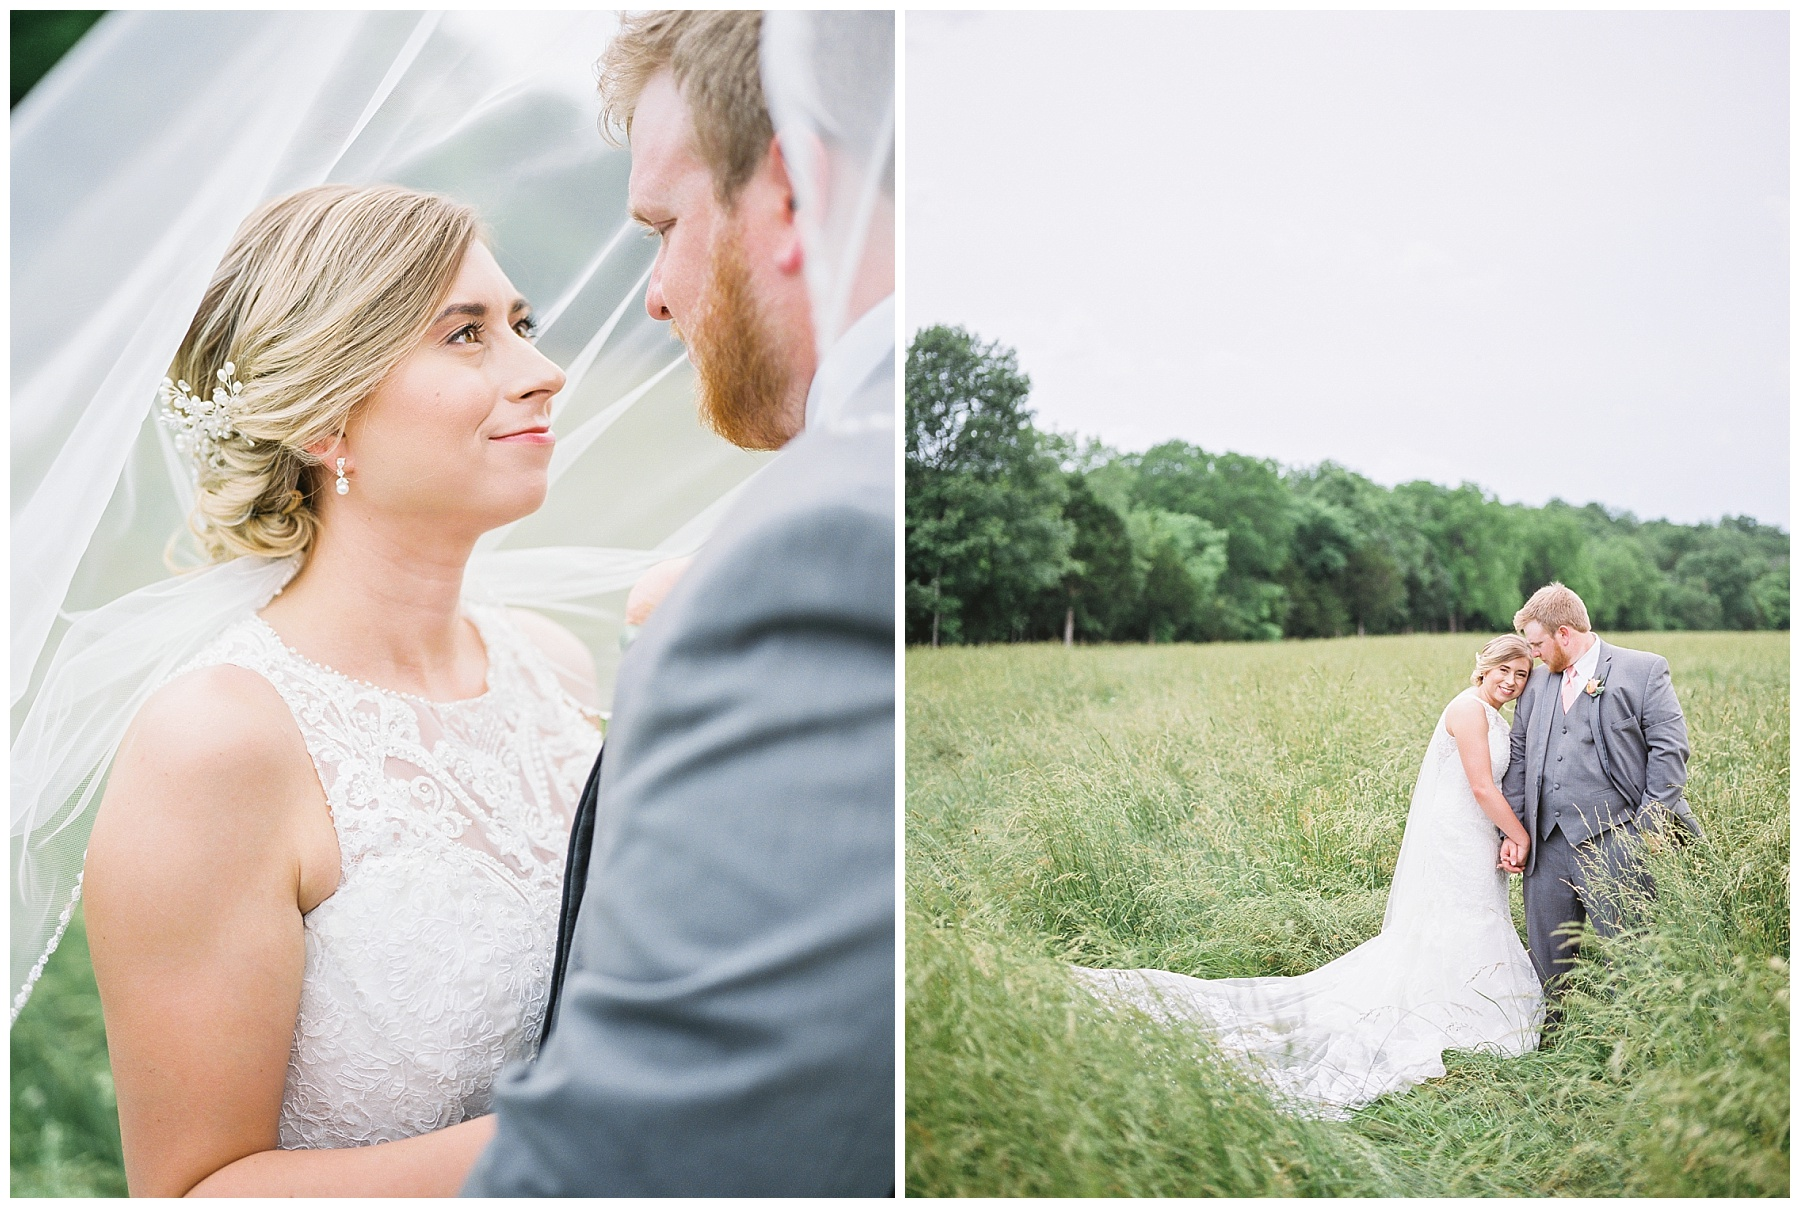 Peach and Dusty Blue Spring Wedding in Rolling Hills of Mid Missouri by Kelsi Kliethermes Photography Best Missouri and Maui Wedding Photographer_0044.jpg